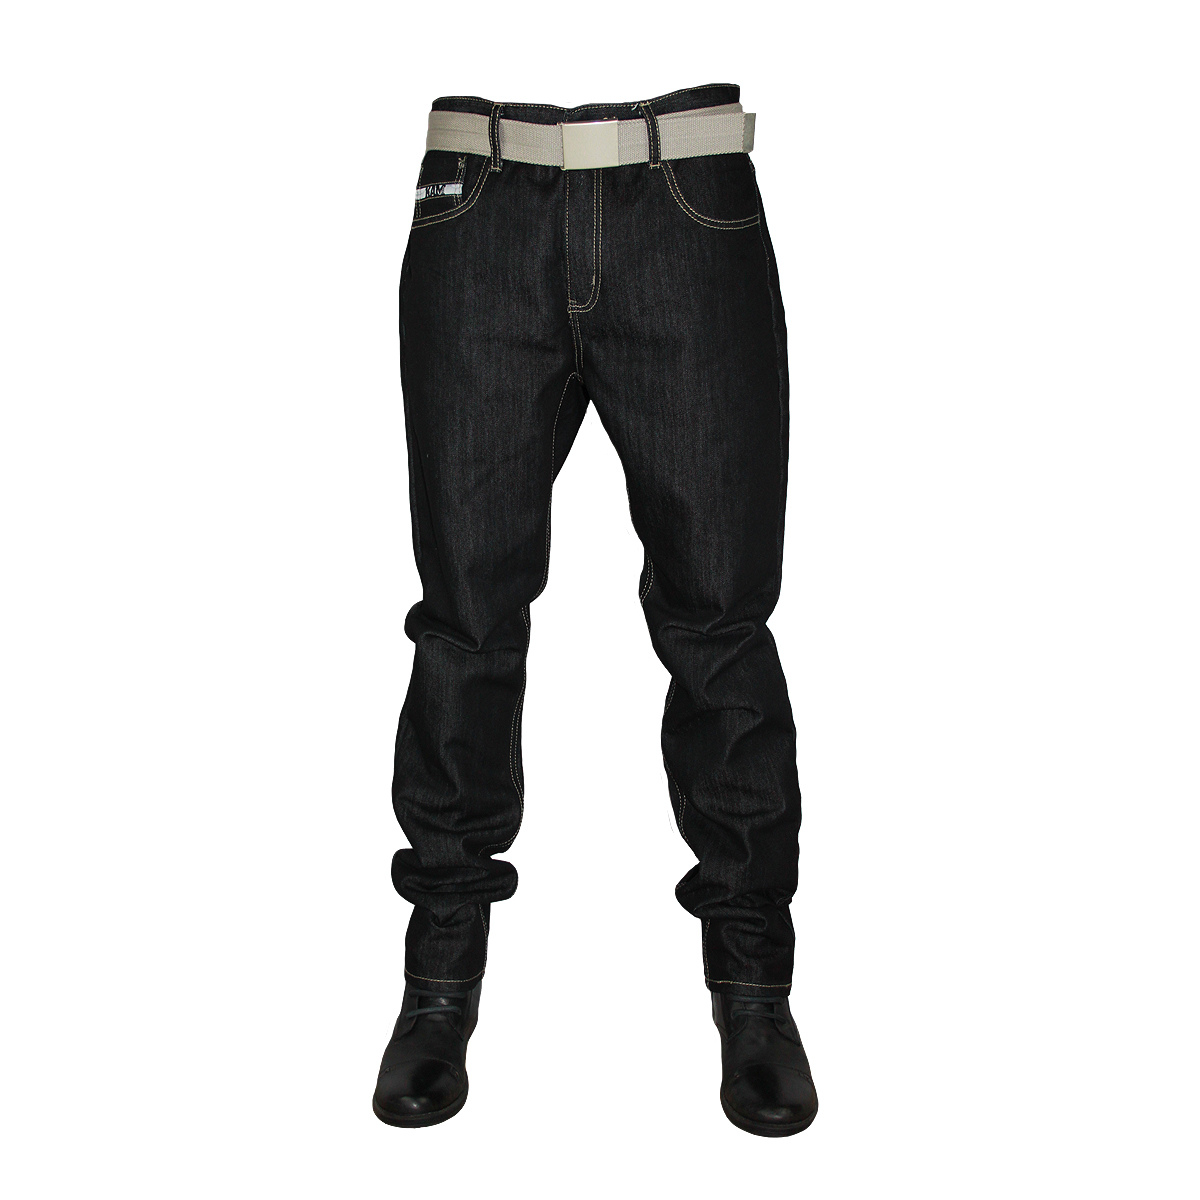 BLACK INDIGO KAM MENS K122-72 SLIM FIT DESIGNER JEANS ALL WAIST ...